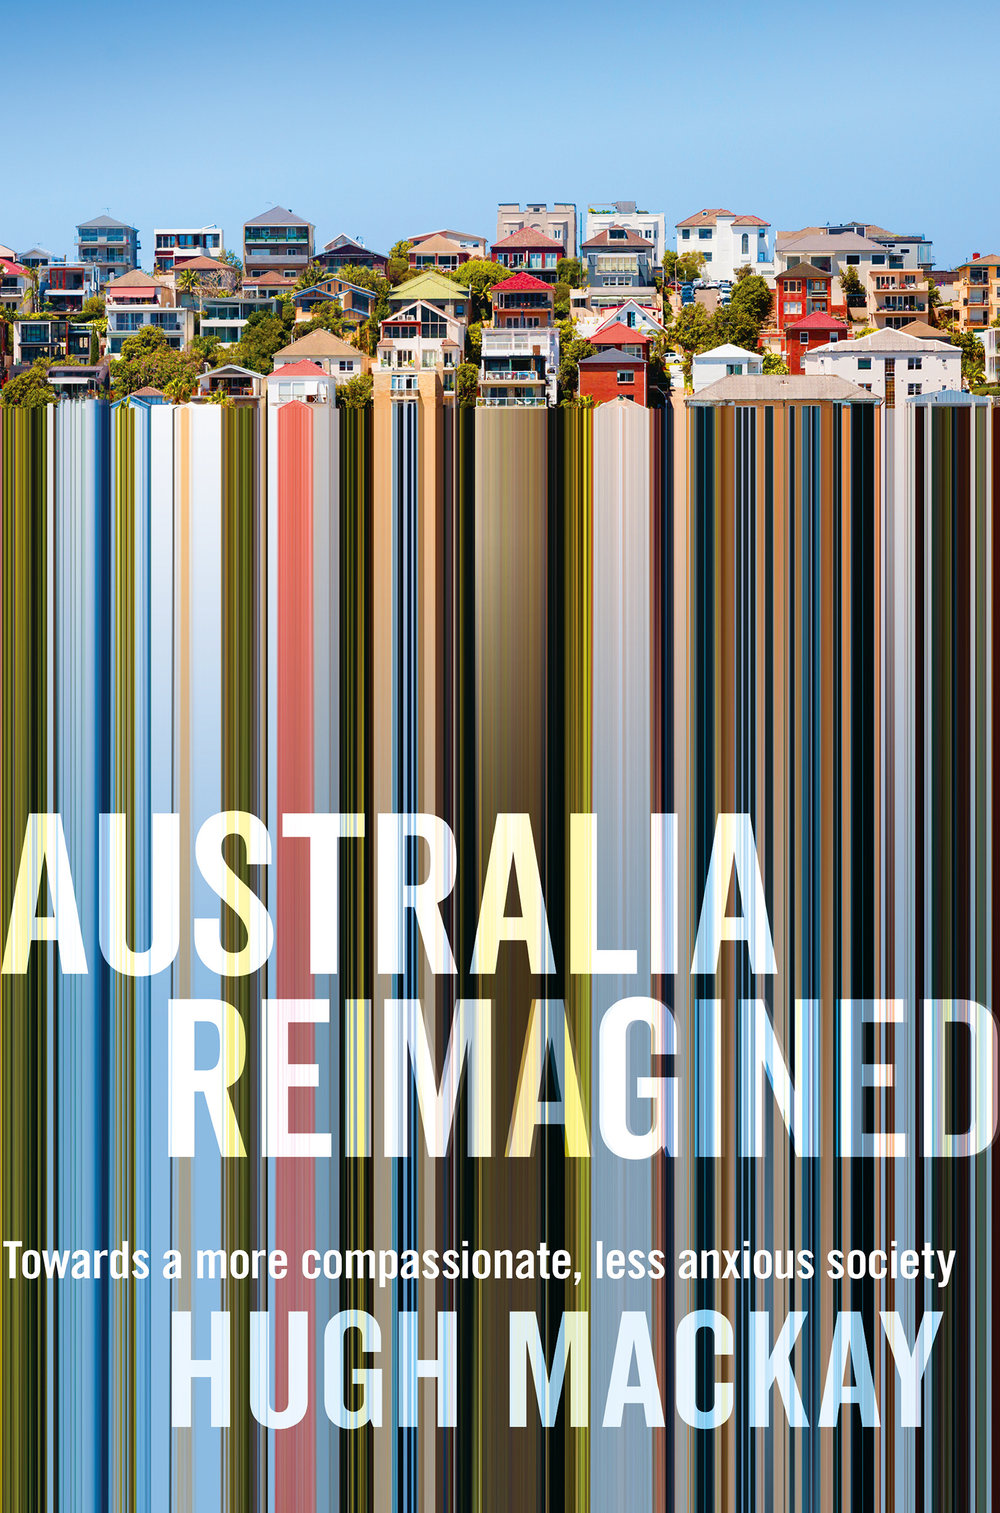 Hugh Mackay's fascinating insights into what Aussies can do to lower segregation in our community.